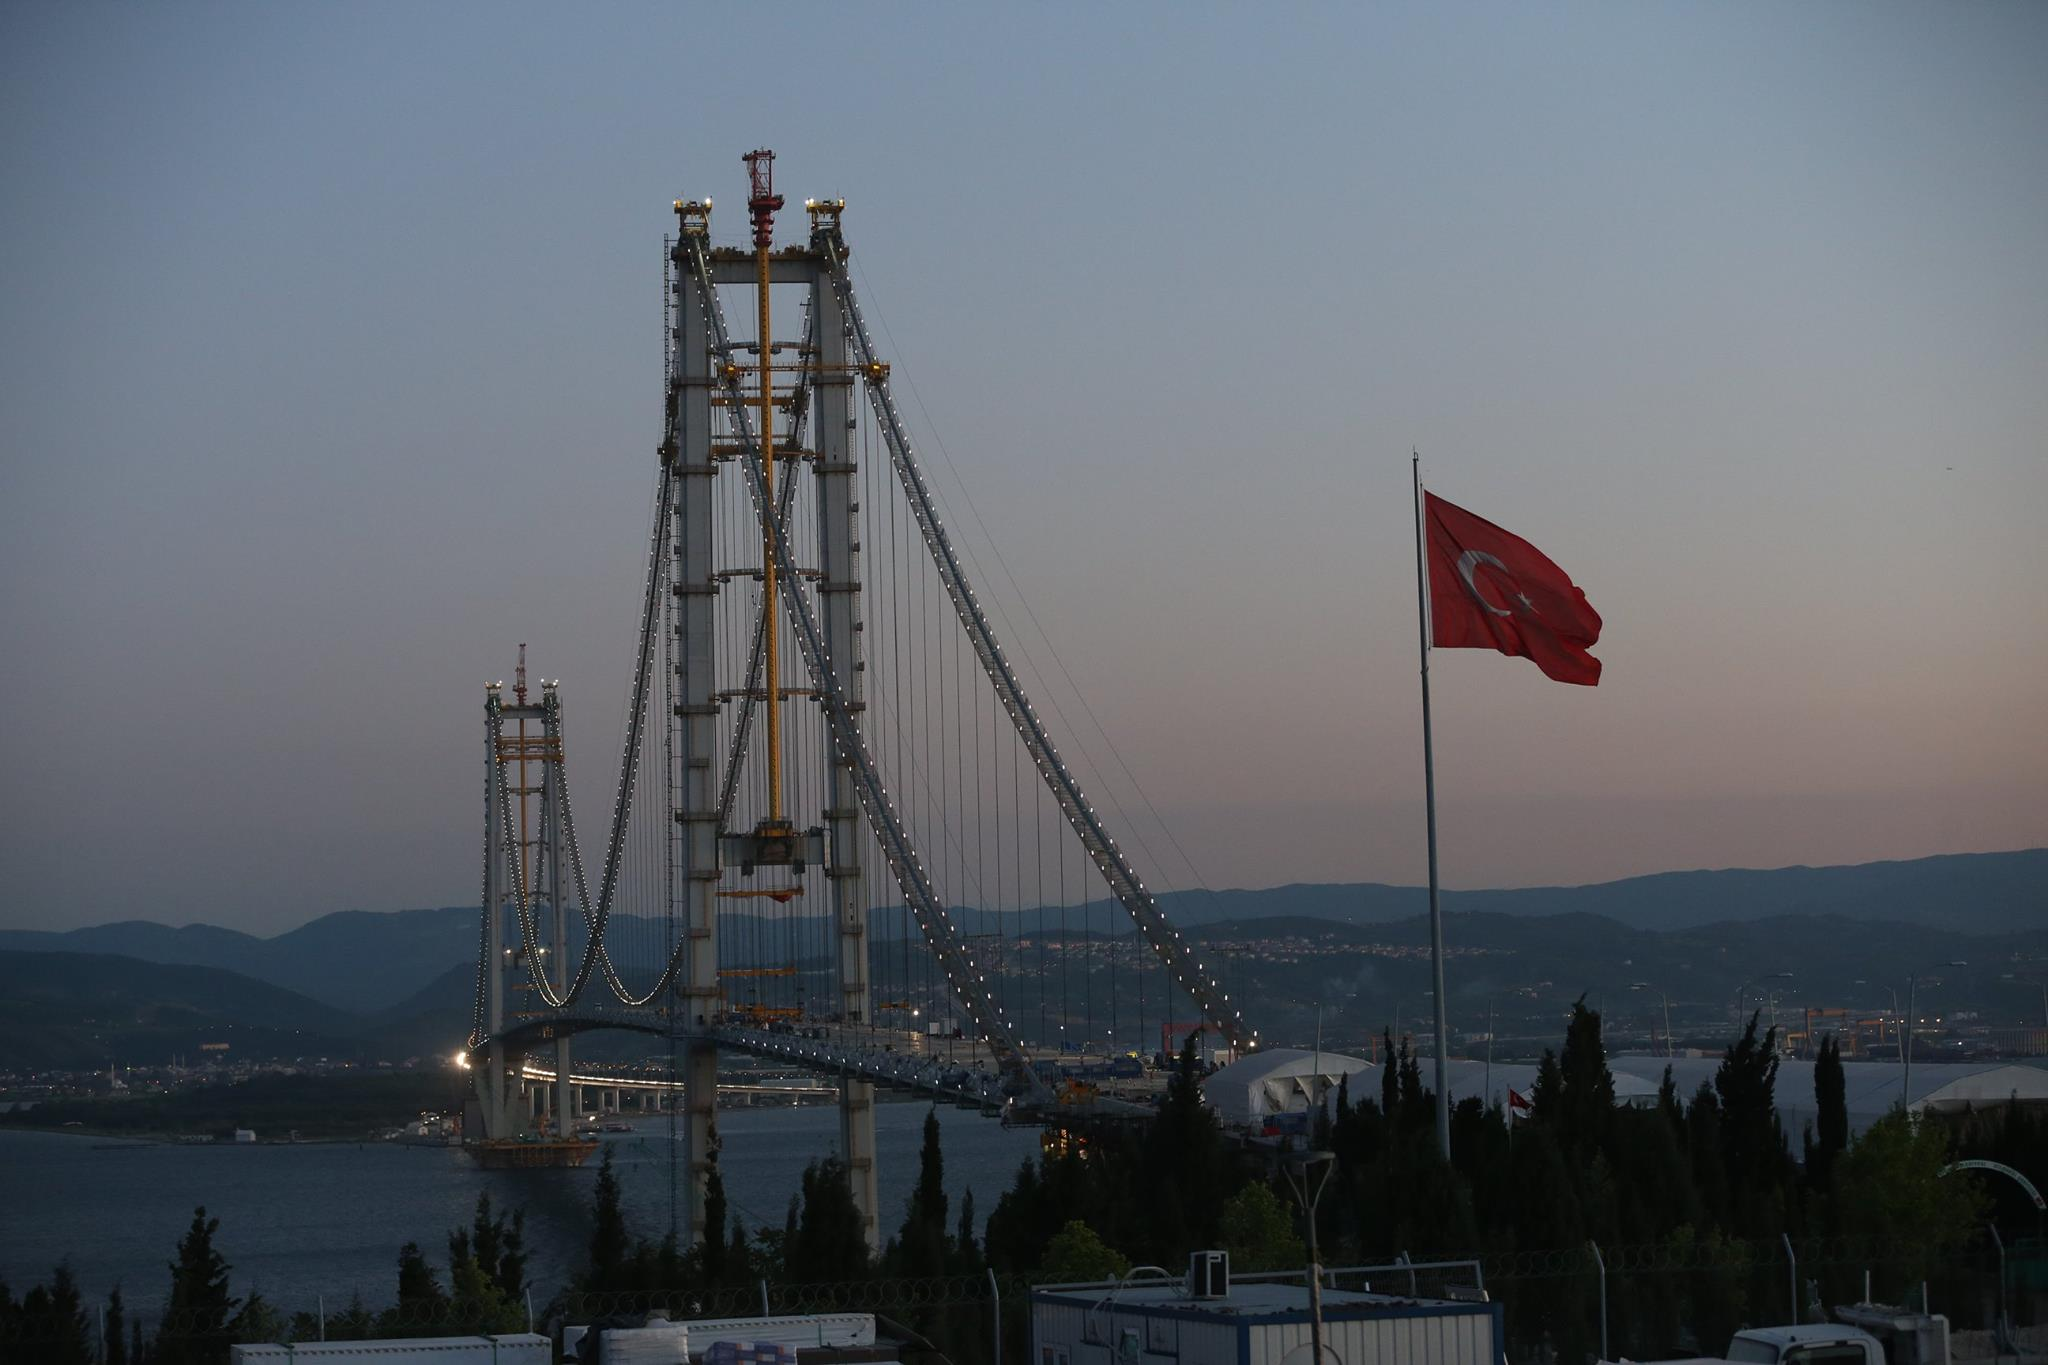 Osman Ghazi Bridge